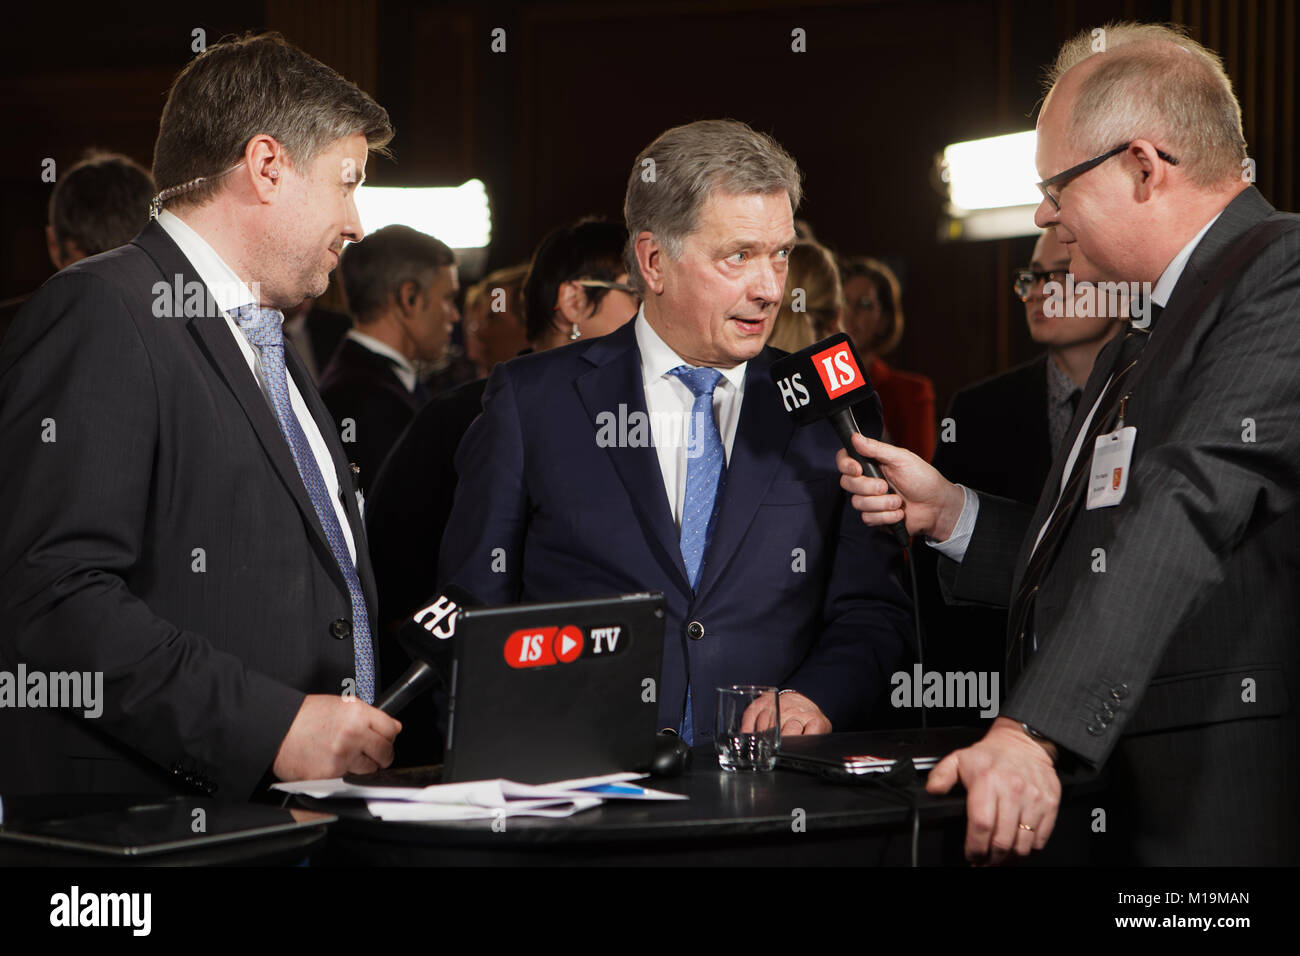 Helsinki, Finland. 28th Jan, 2018. Sauli Niinistö (center) gives short comment on the elections in the House - Stock Image